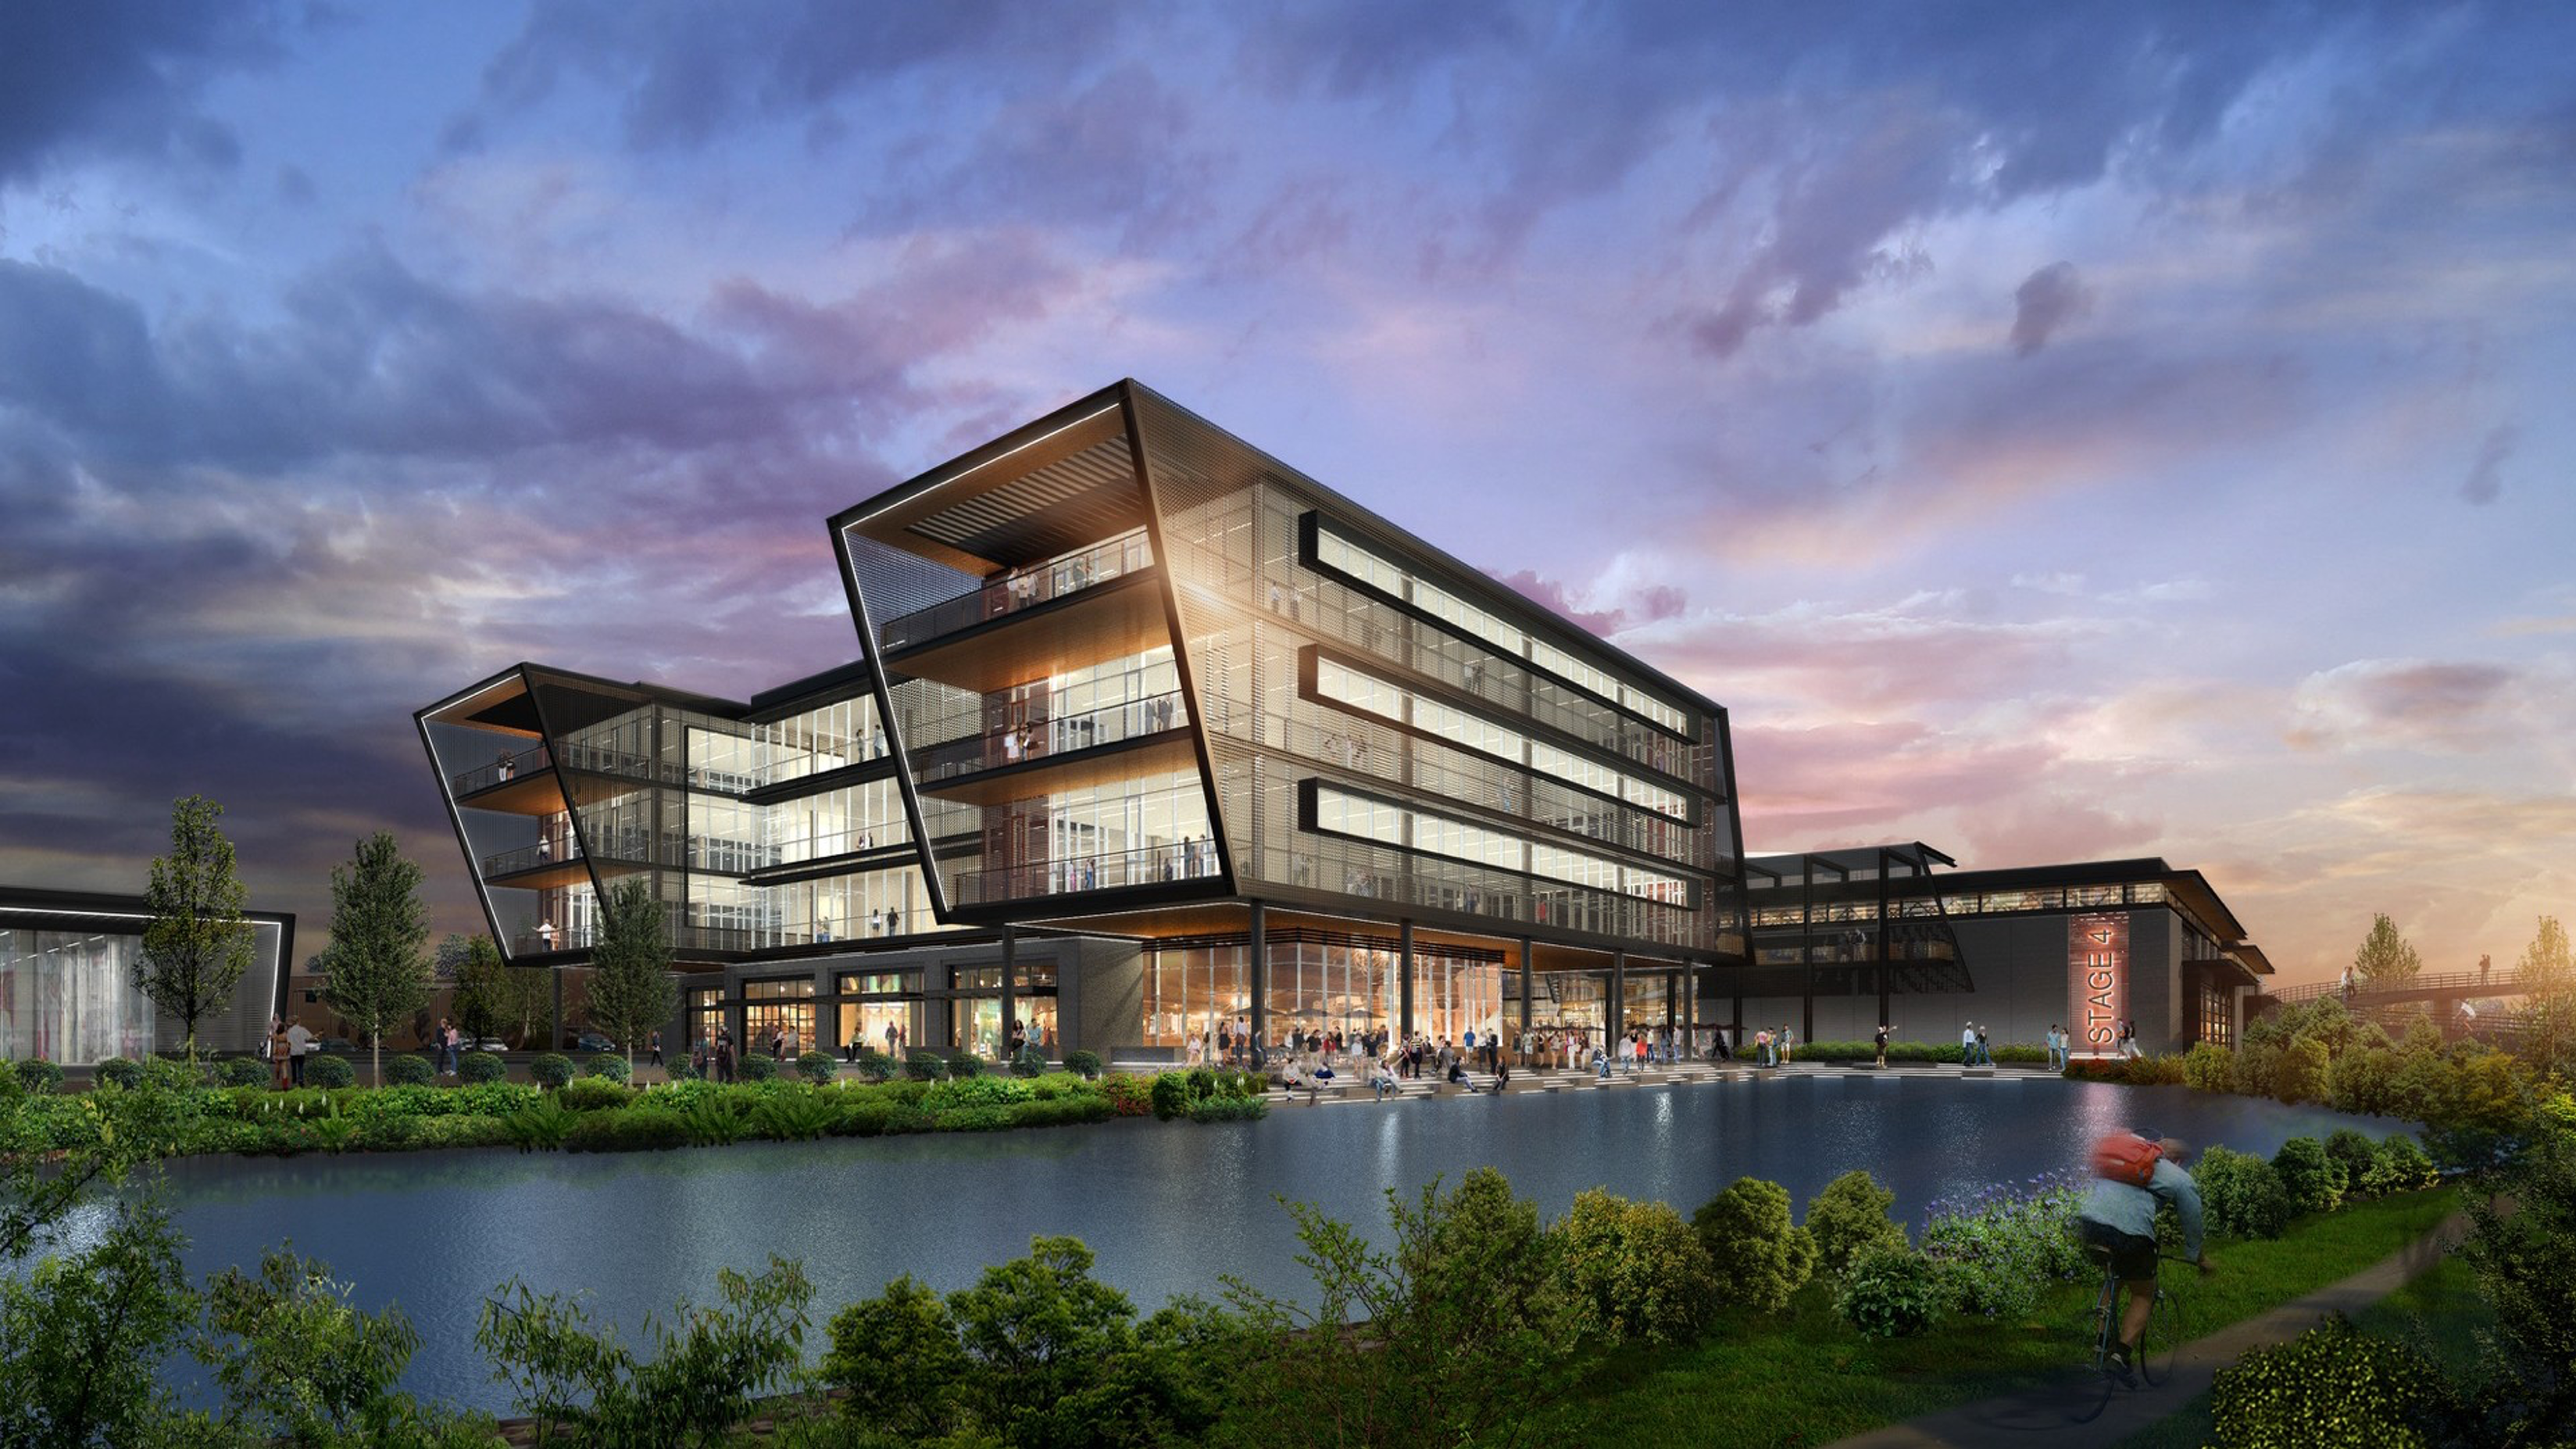 A rendering of a sleek, four-story office complex, adorned in glass and sharp angles.